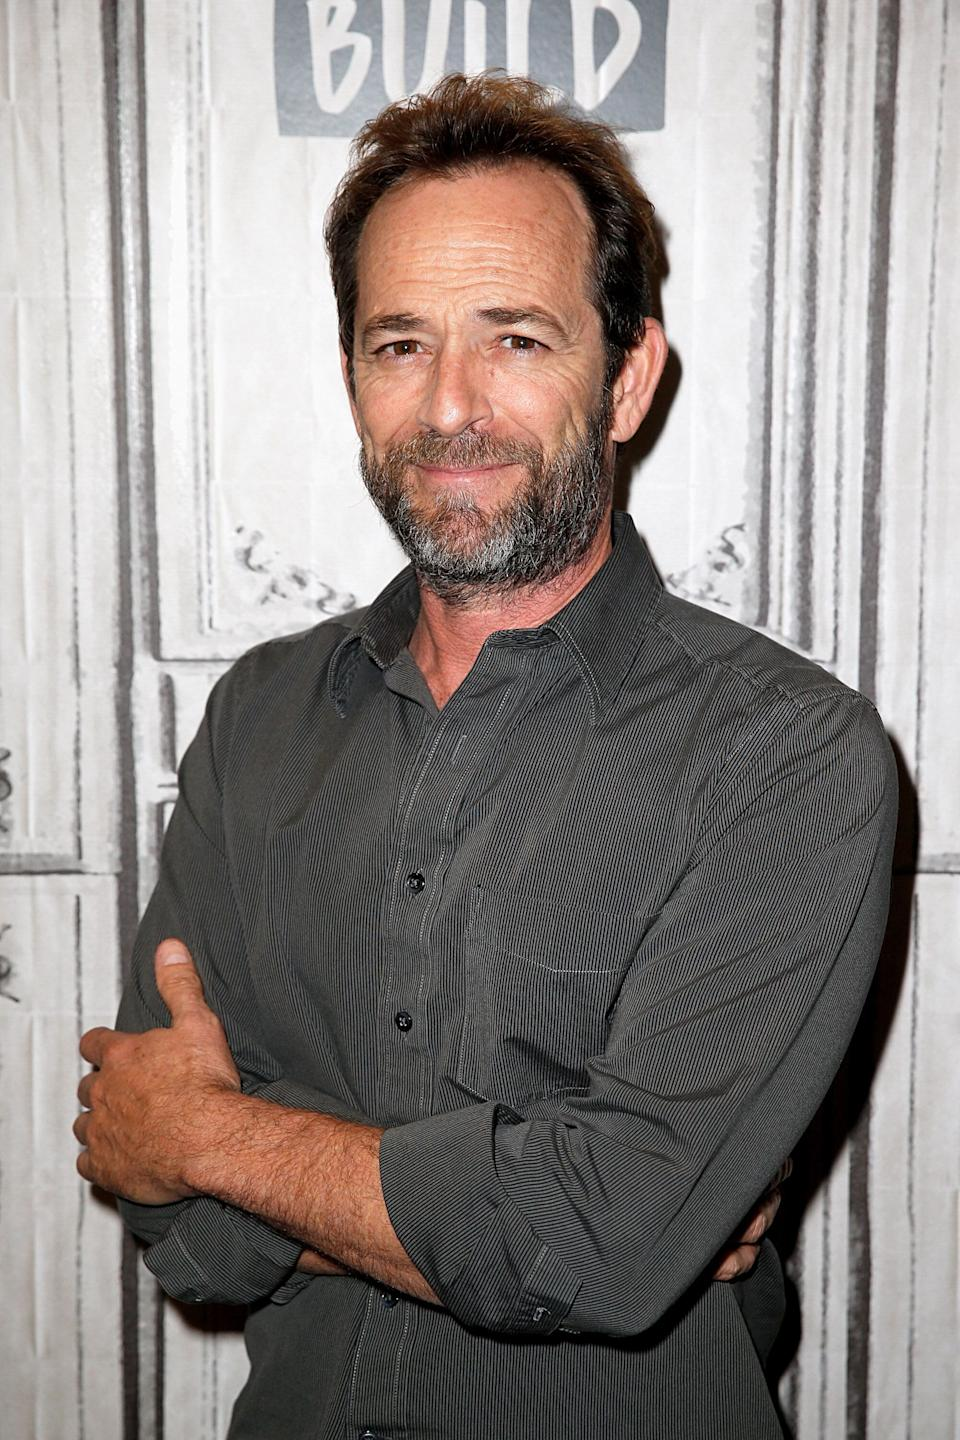 Luke Perry. Image via Getty Images.